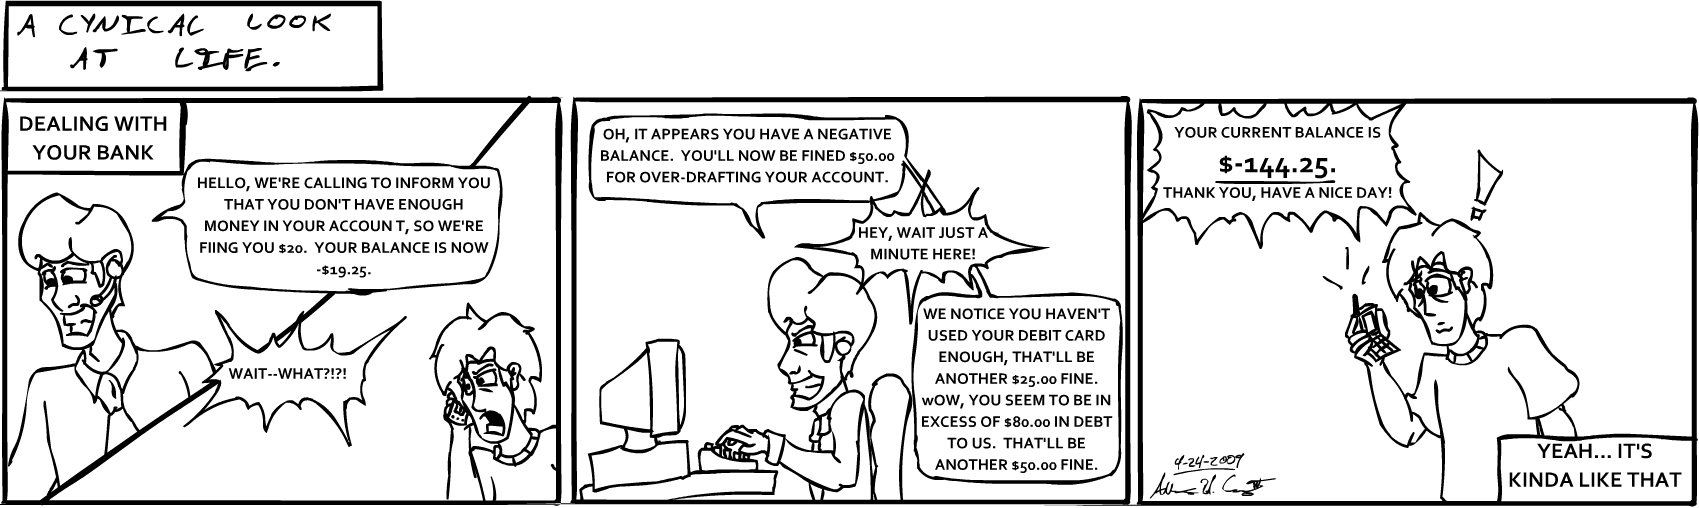 Dealing With Your Bank